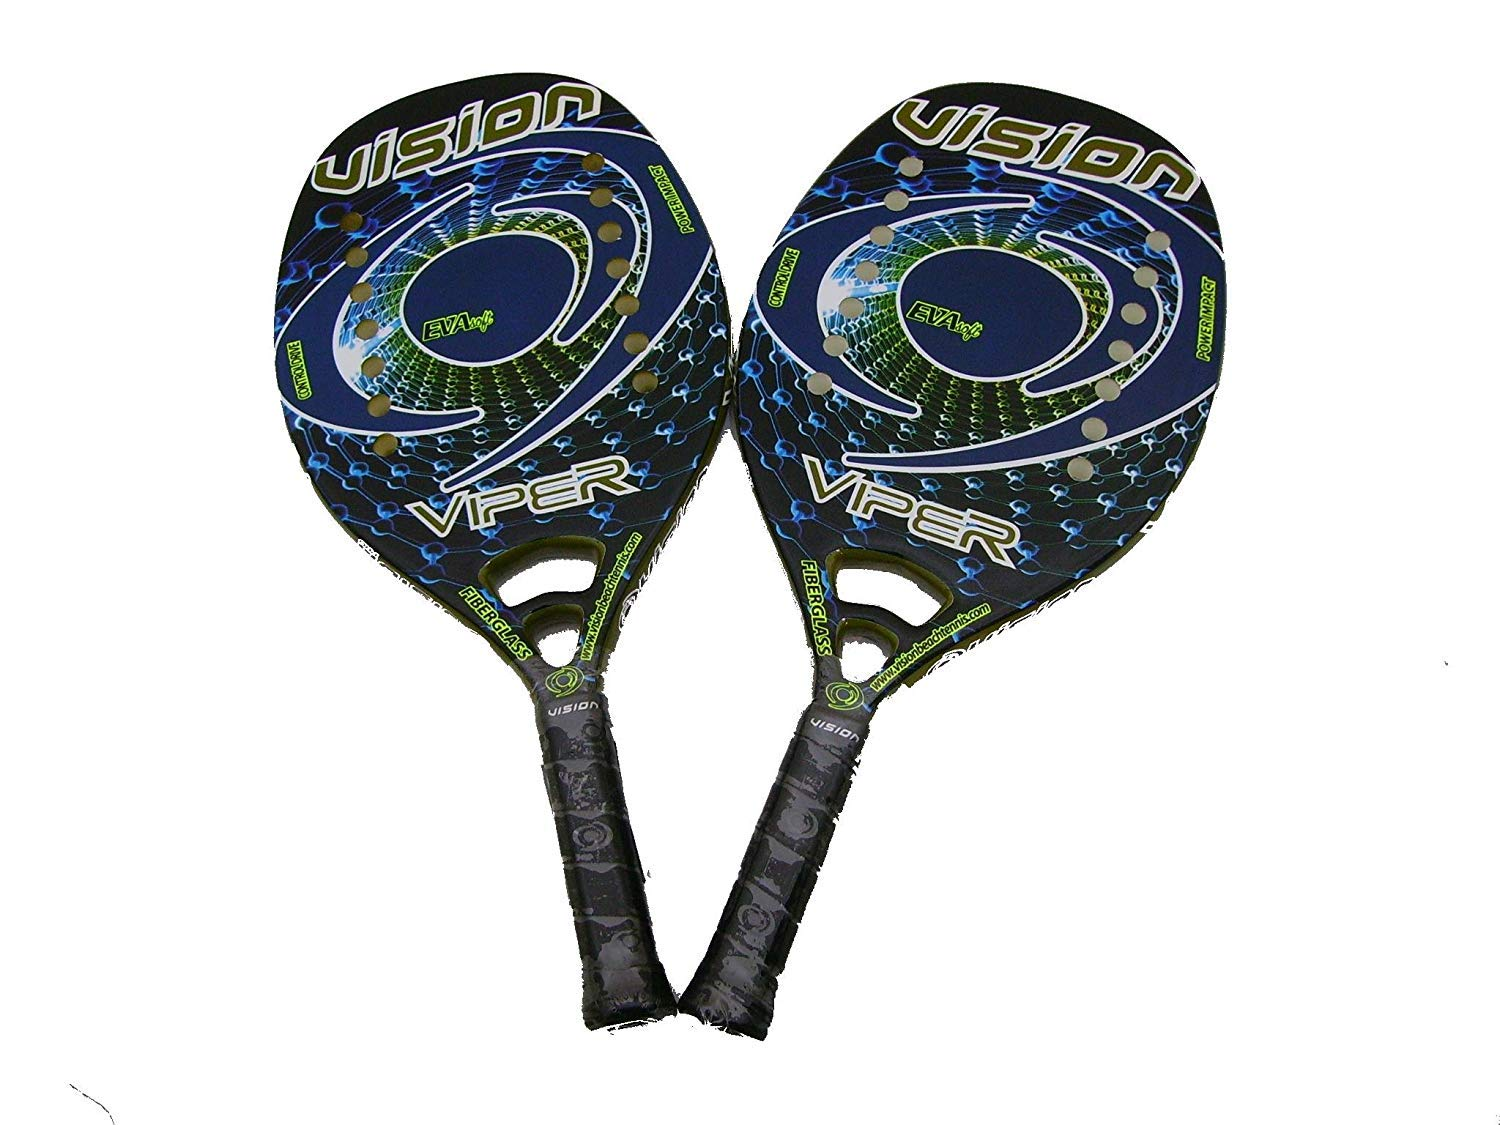 Pareja Raquetas Beach Tennis Vision Viper 2018: Amazon.es ...